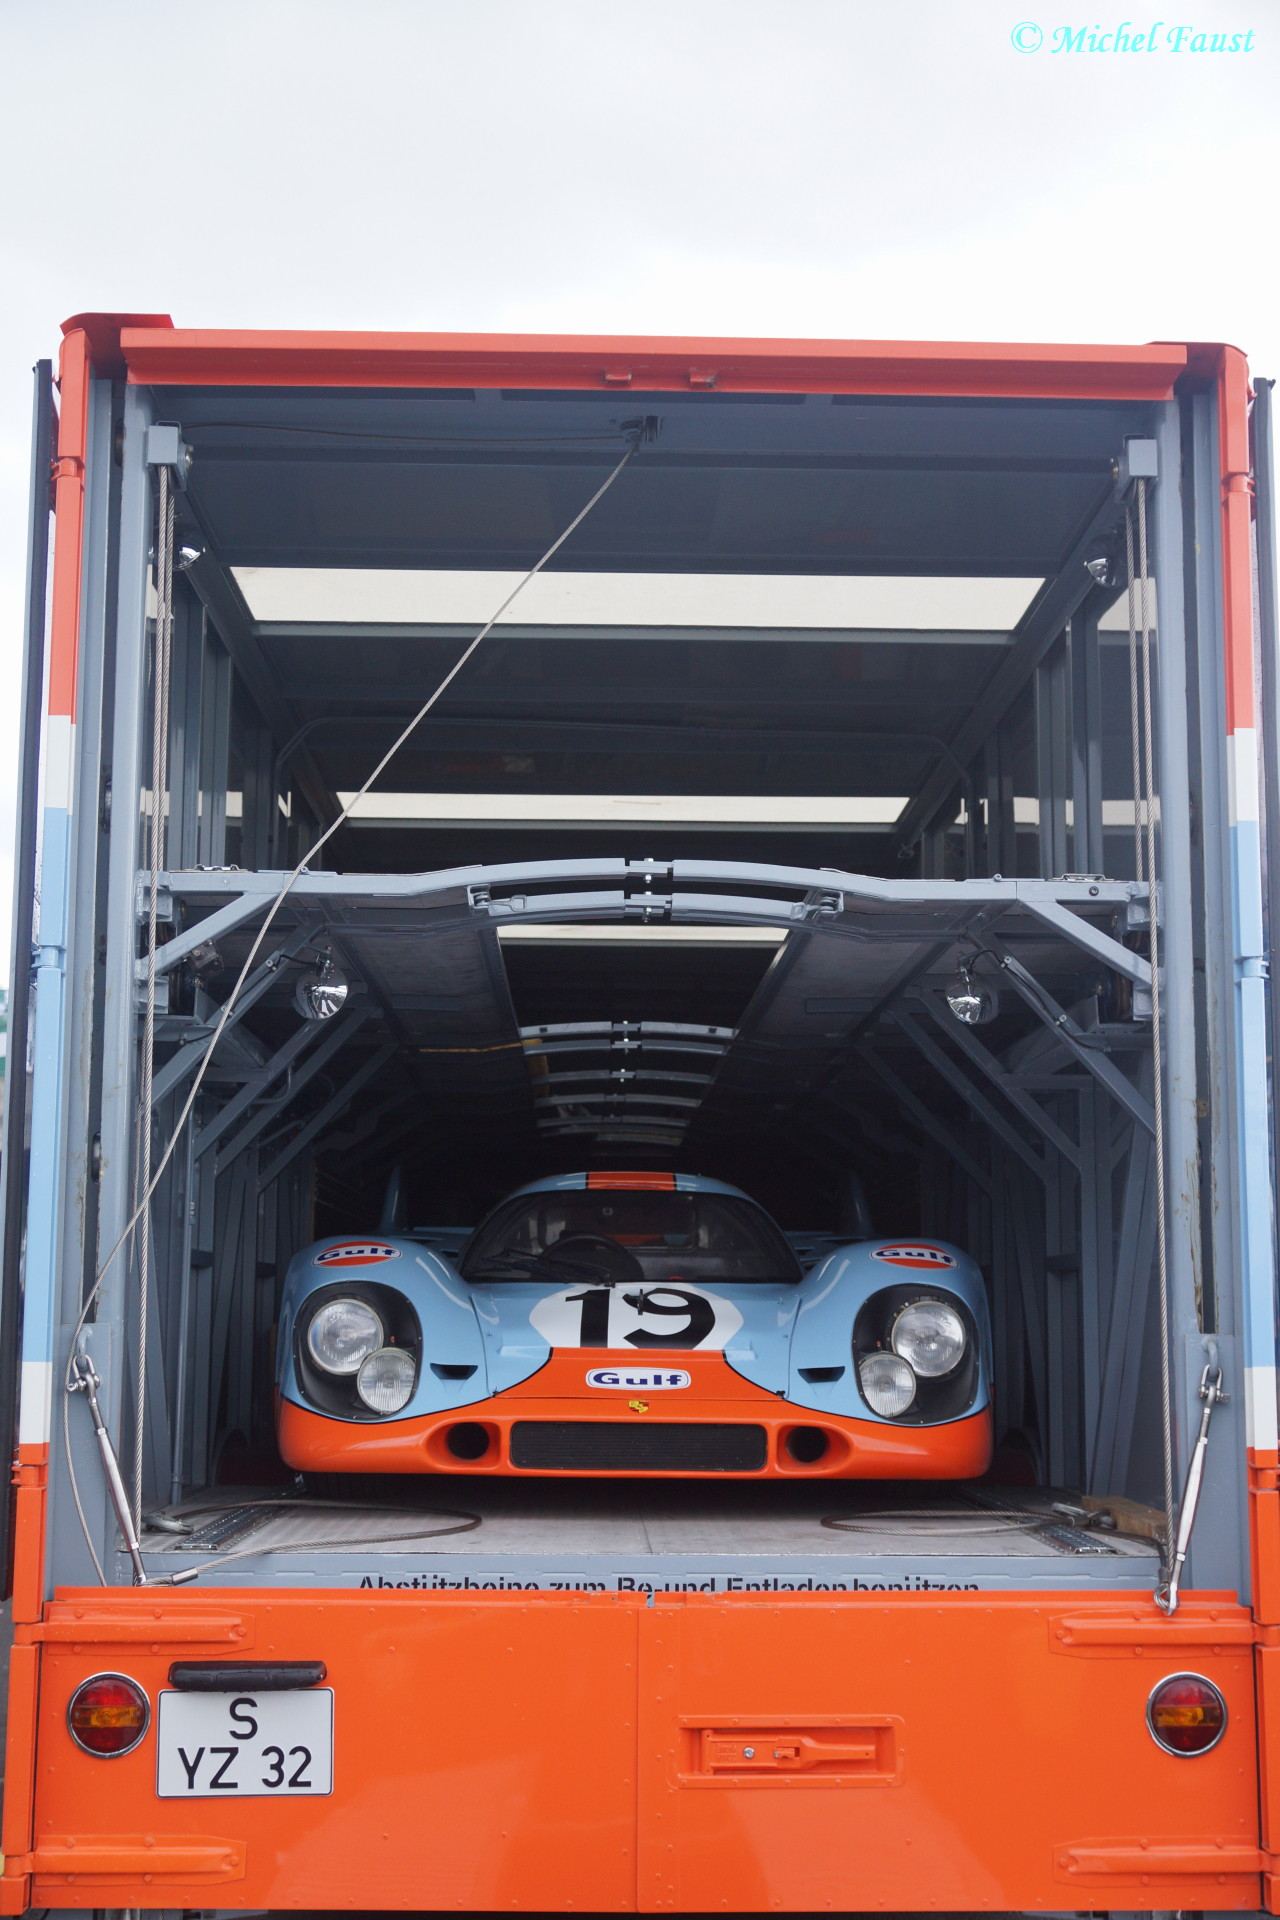 John Wyer Automotive Engineering Ltd. Porsche 917 K Le Mans 1971 / Le Mans Classic 2014